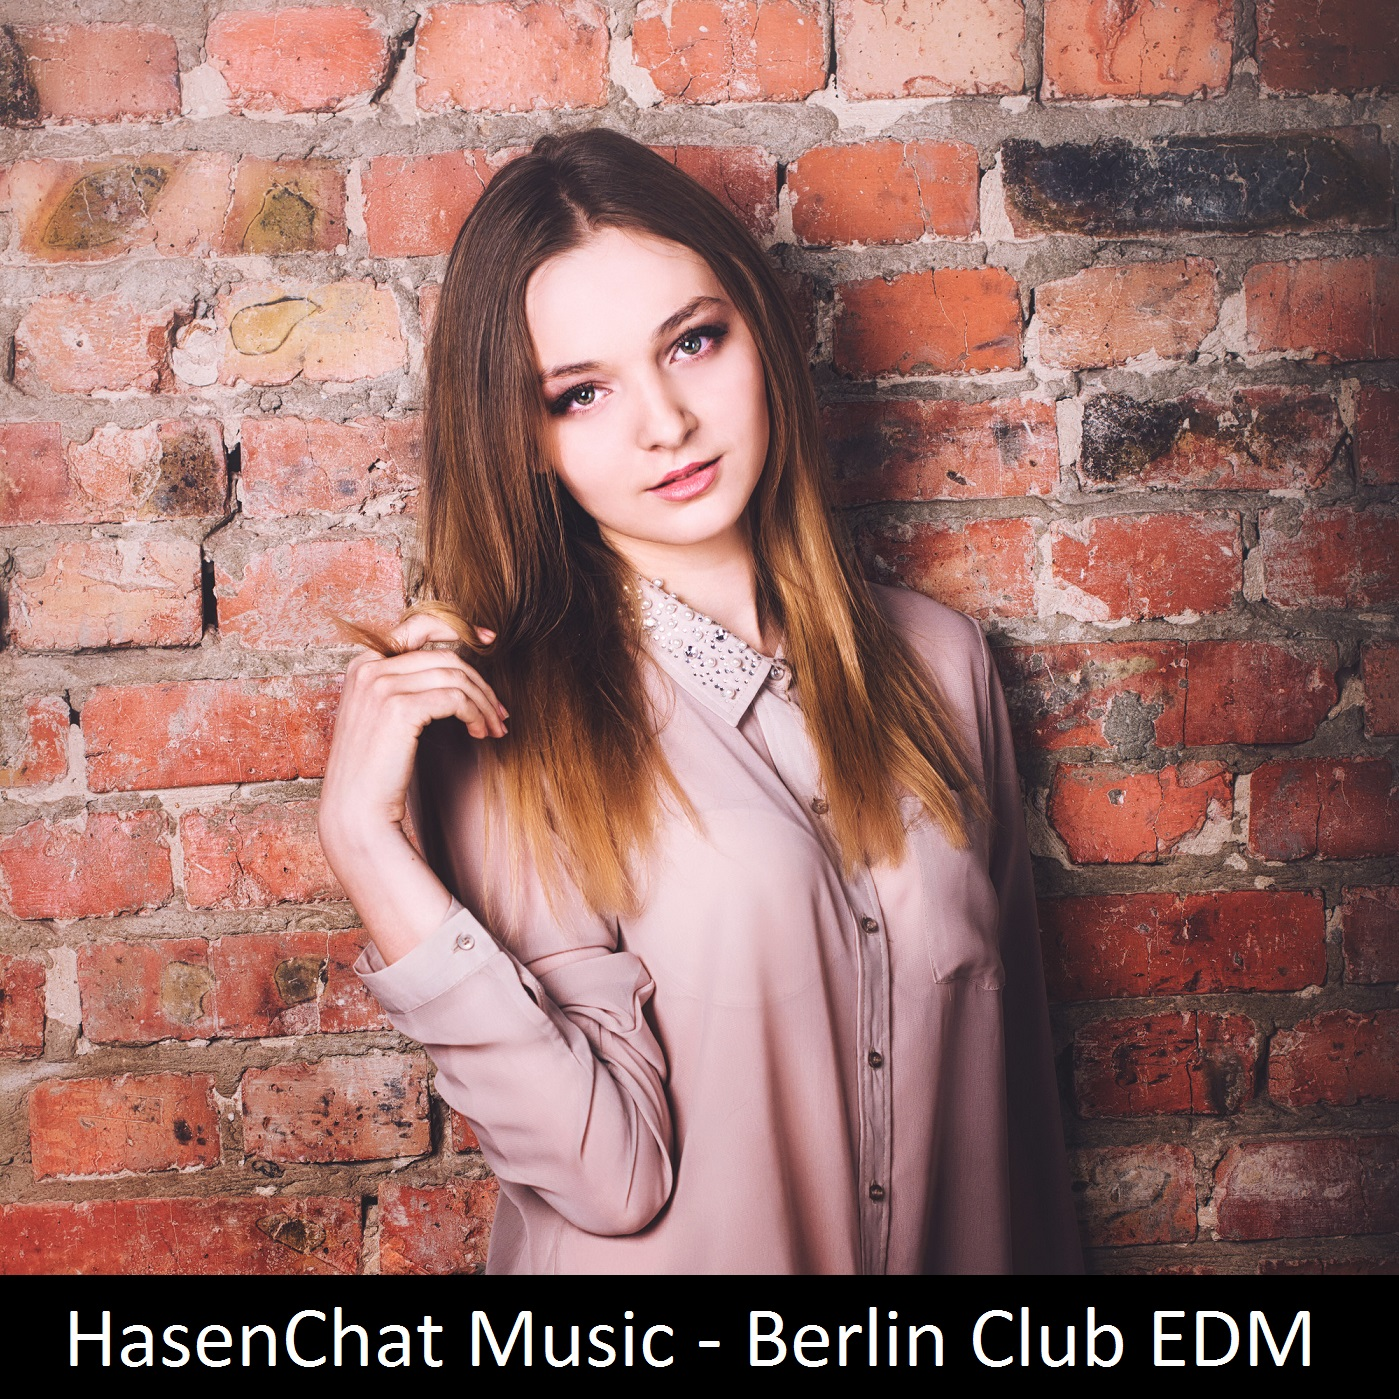 HasenChat Music - Berlin Club EDM